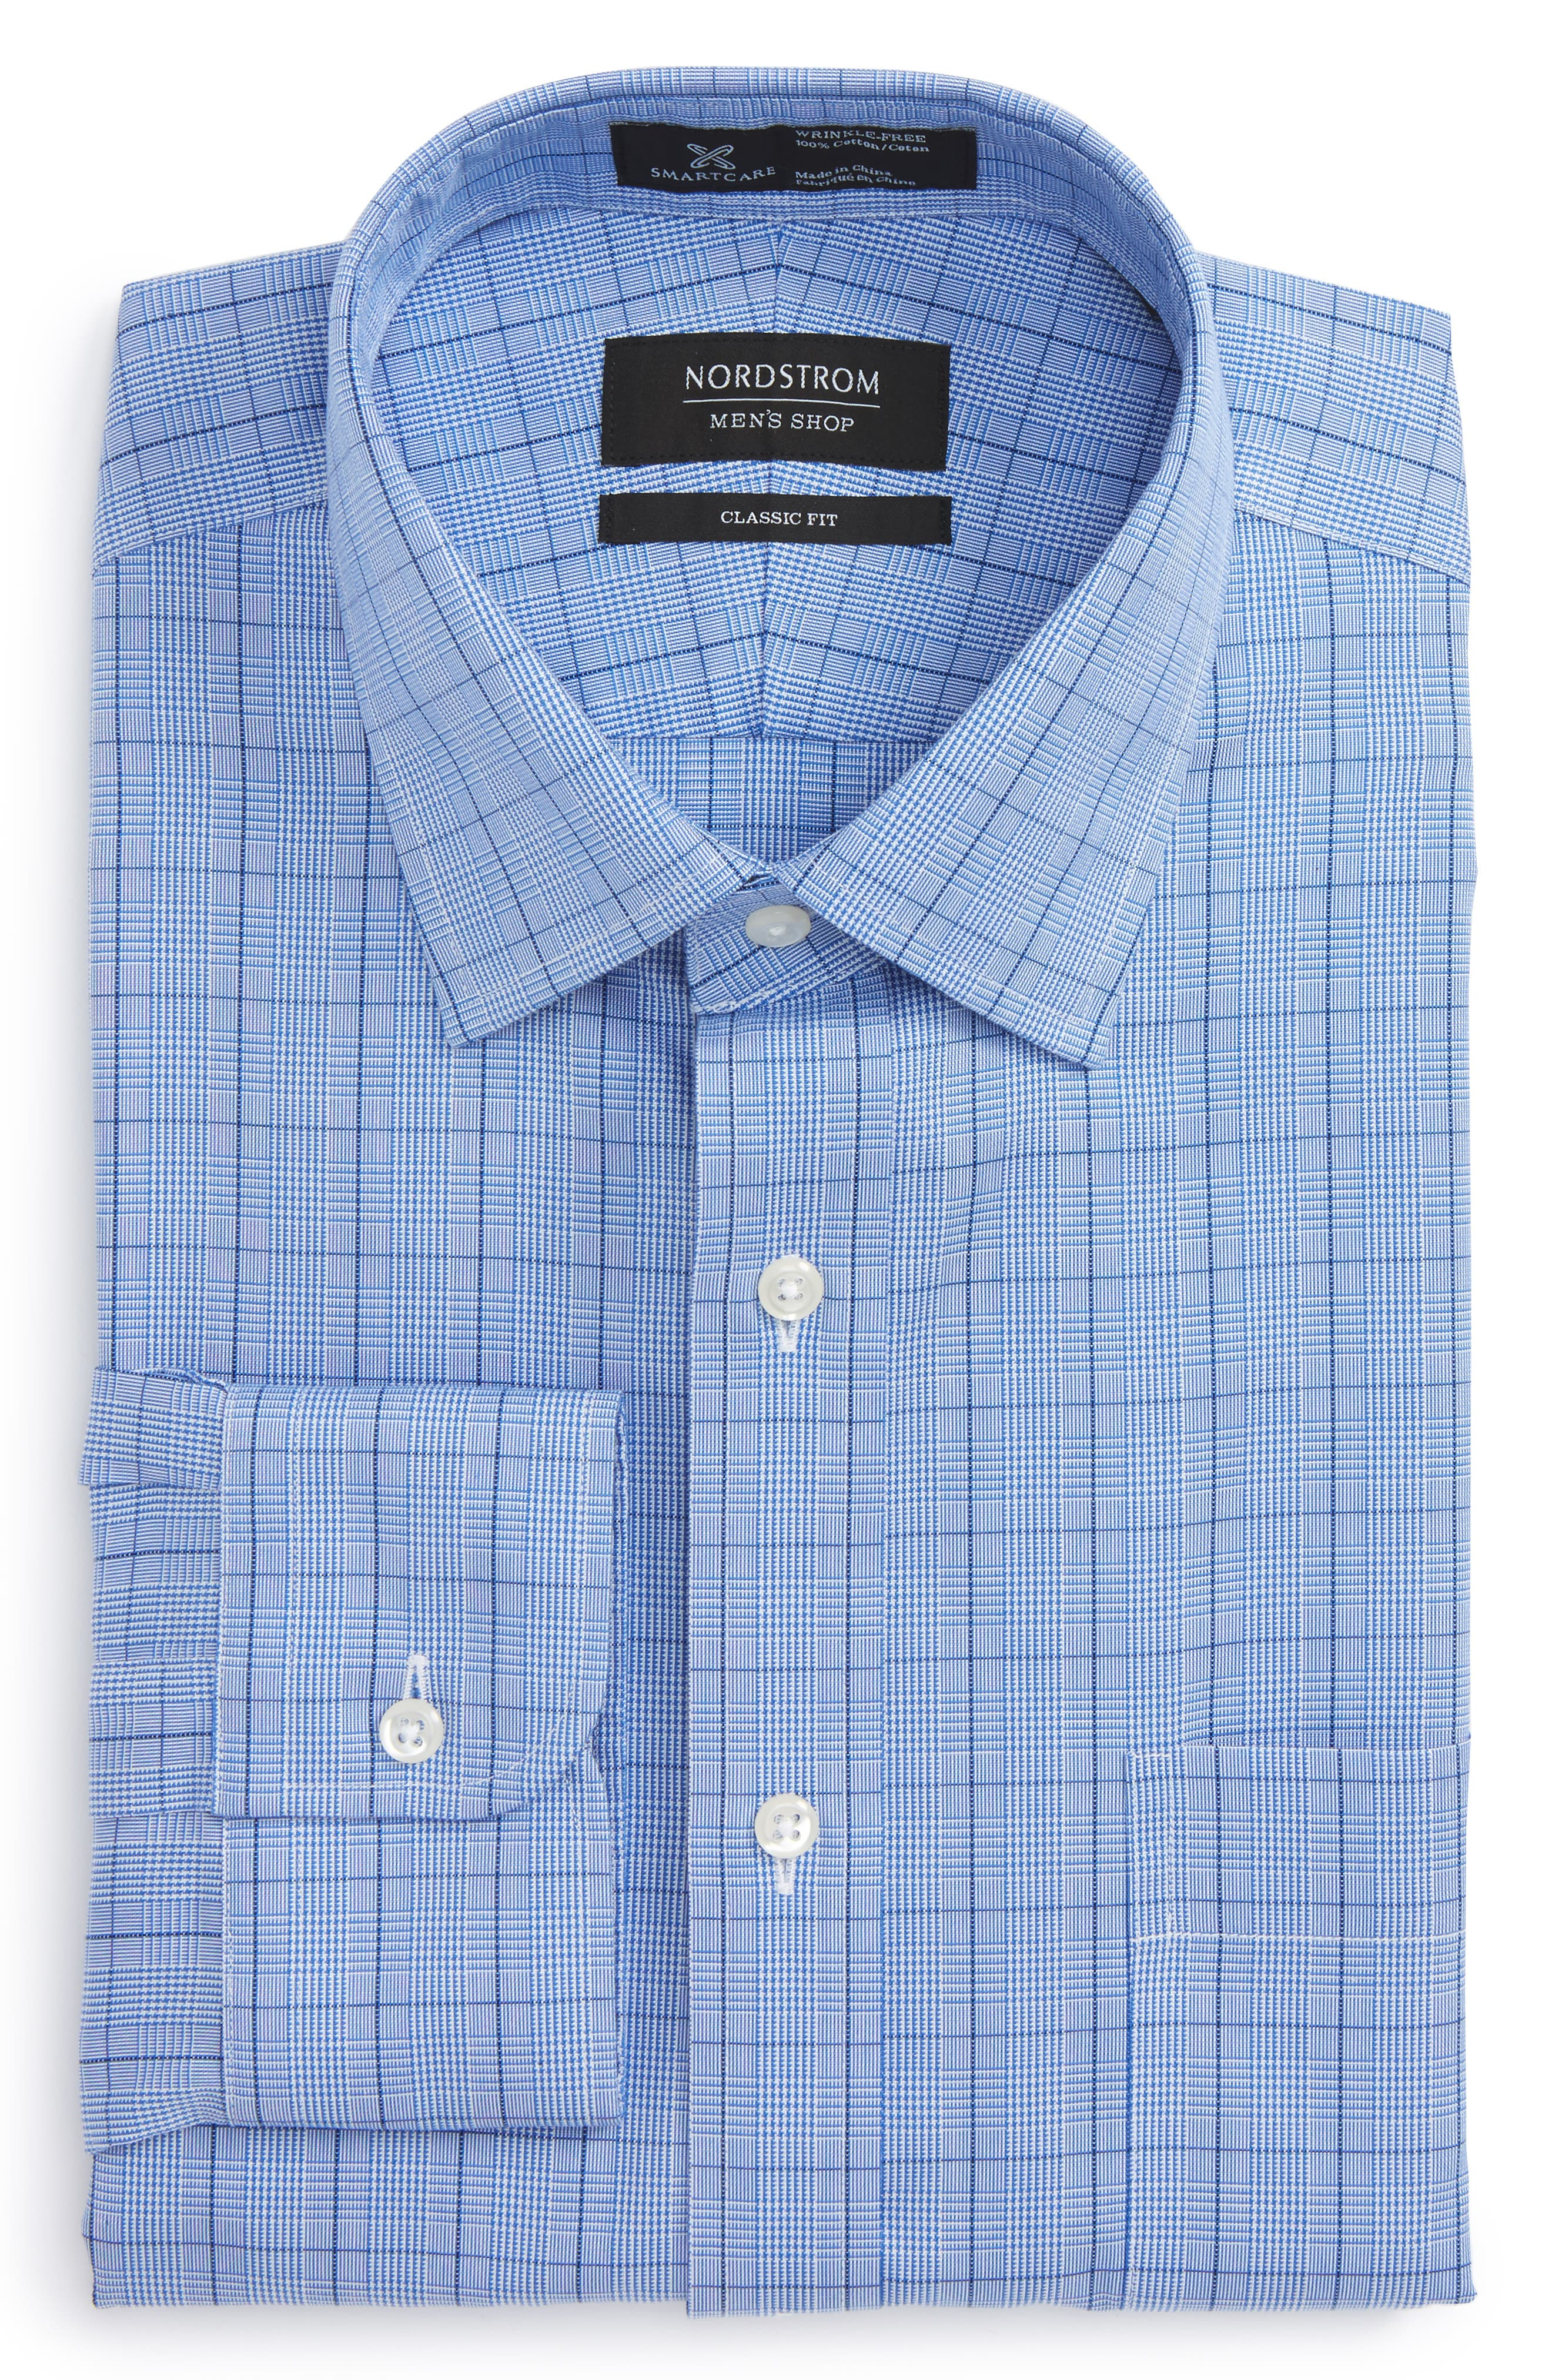 Alternate Image 1 Selected - Nordstrom Men's Shop Smartcare™ Classic Fit Windowpane Dress Shirt